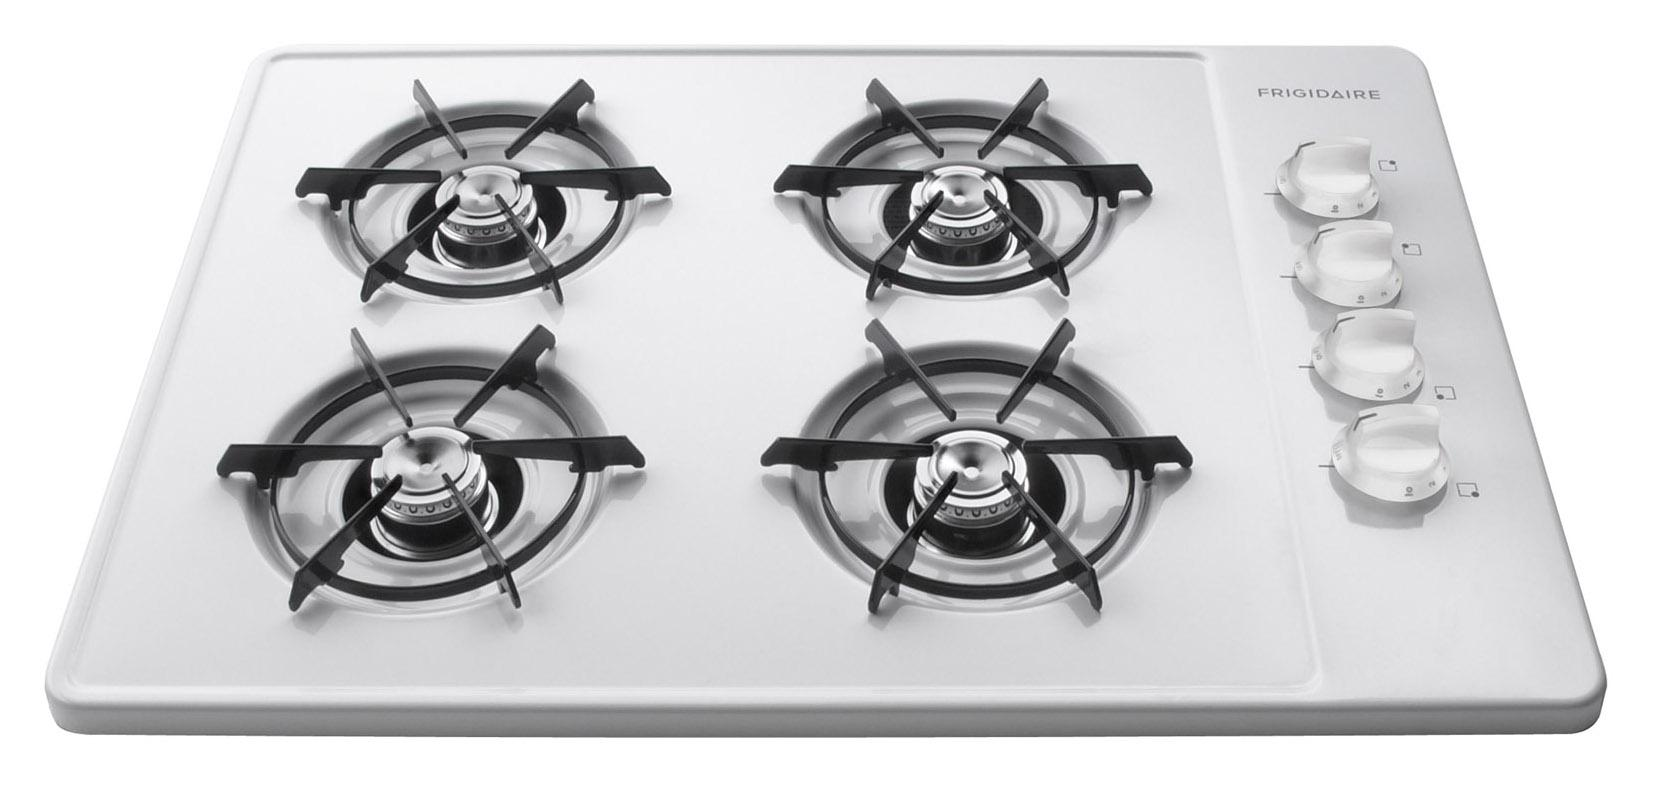 "Frigidaire Gas Cooktop 30"" Built-In Gas Cooktop - Item Number: FFGC3005LW"